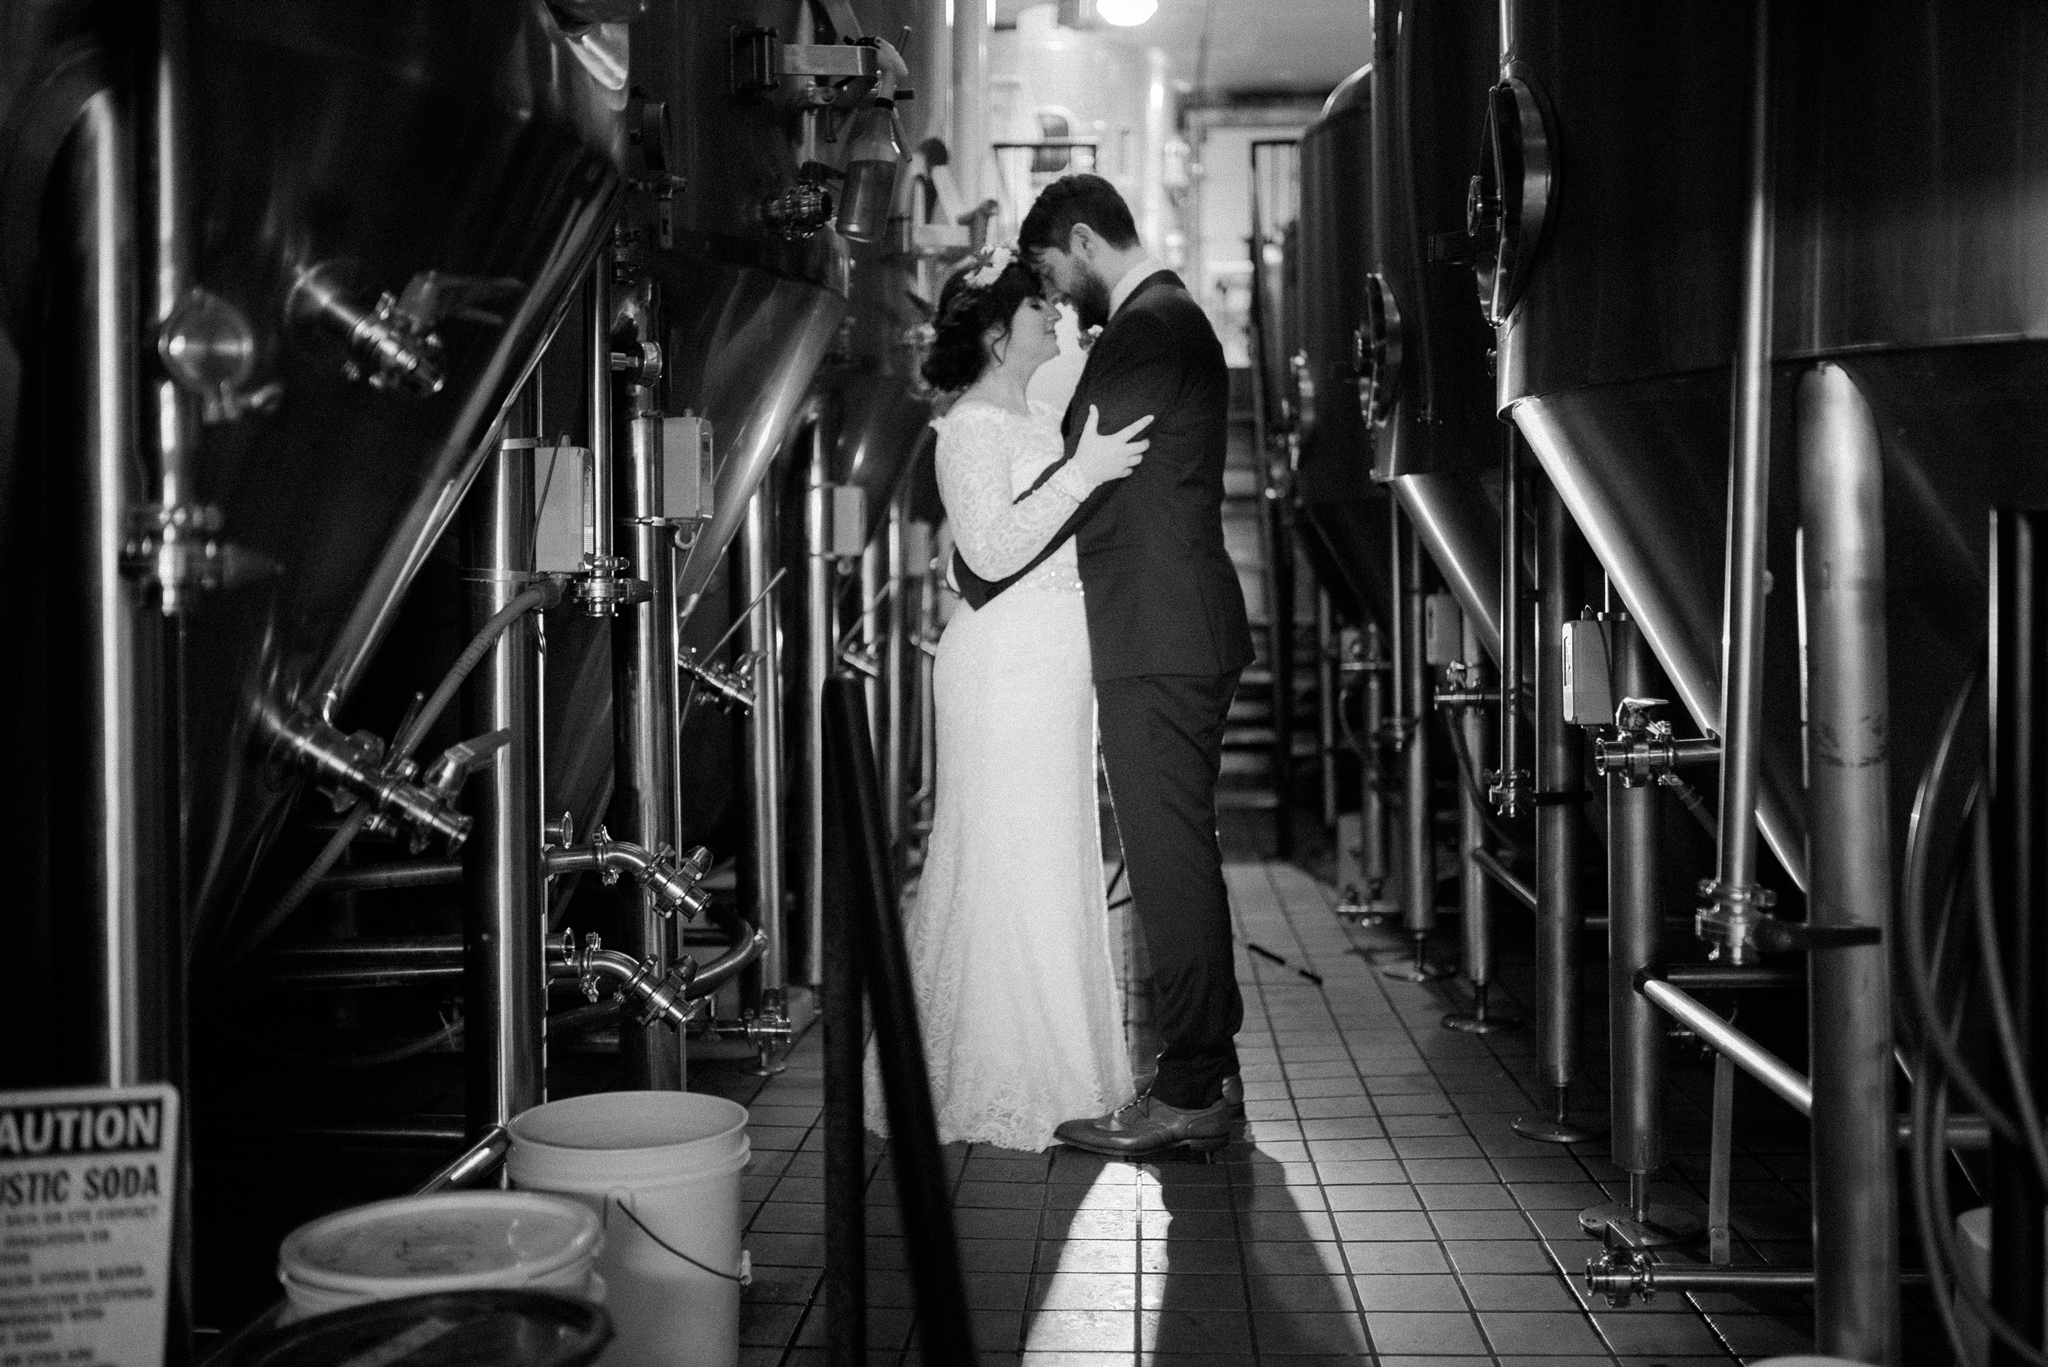 Revolution-Brewing-Wedding-Photographer-107.JPG